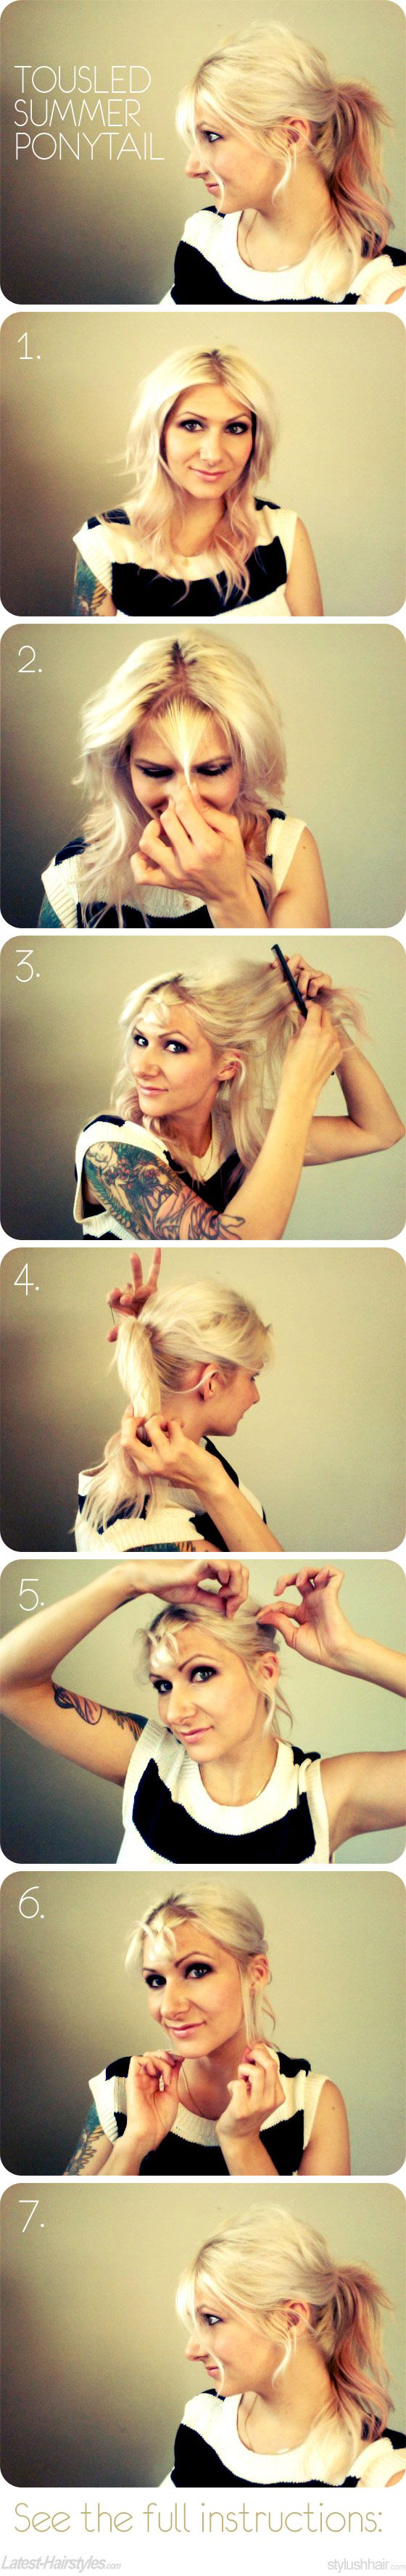 Tousled Summer Ponytail Tutorial! Get the full tutorial + tips here... http://www.latest-hairstyles.com/tutorials/summer-tousled-ponytail.html?ref=home#